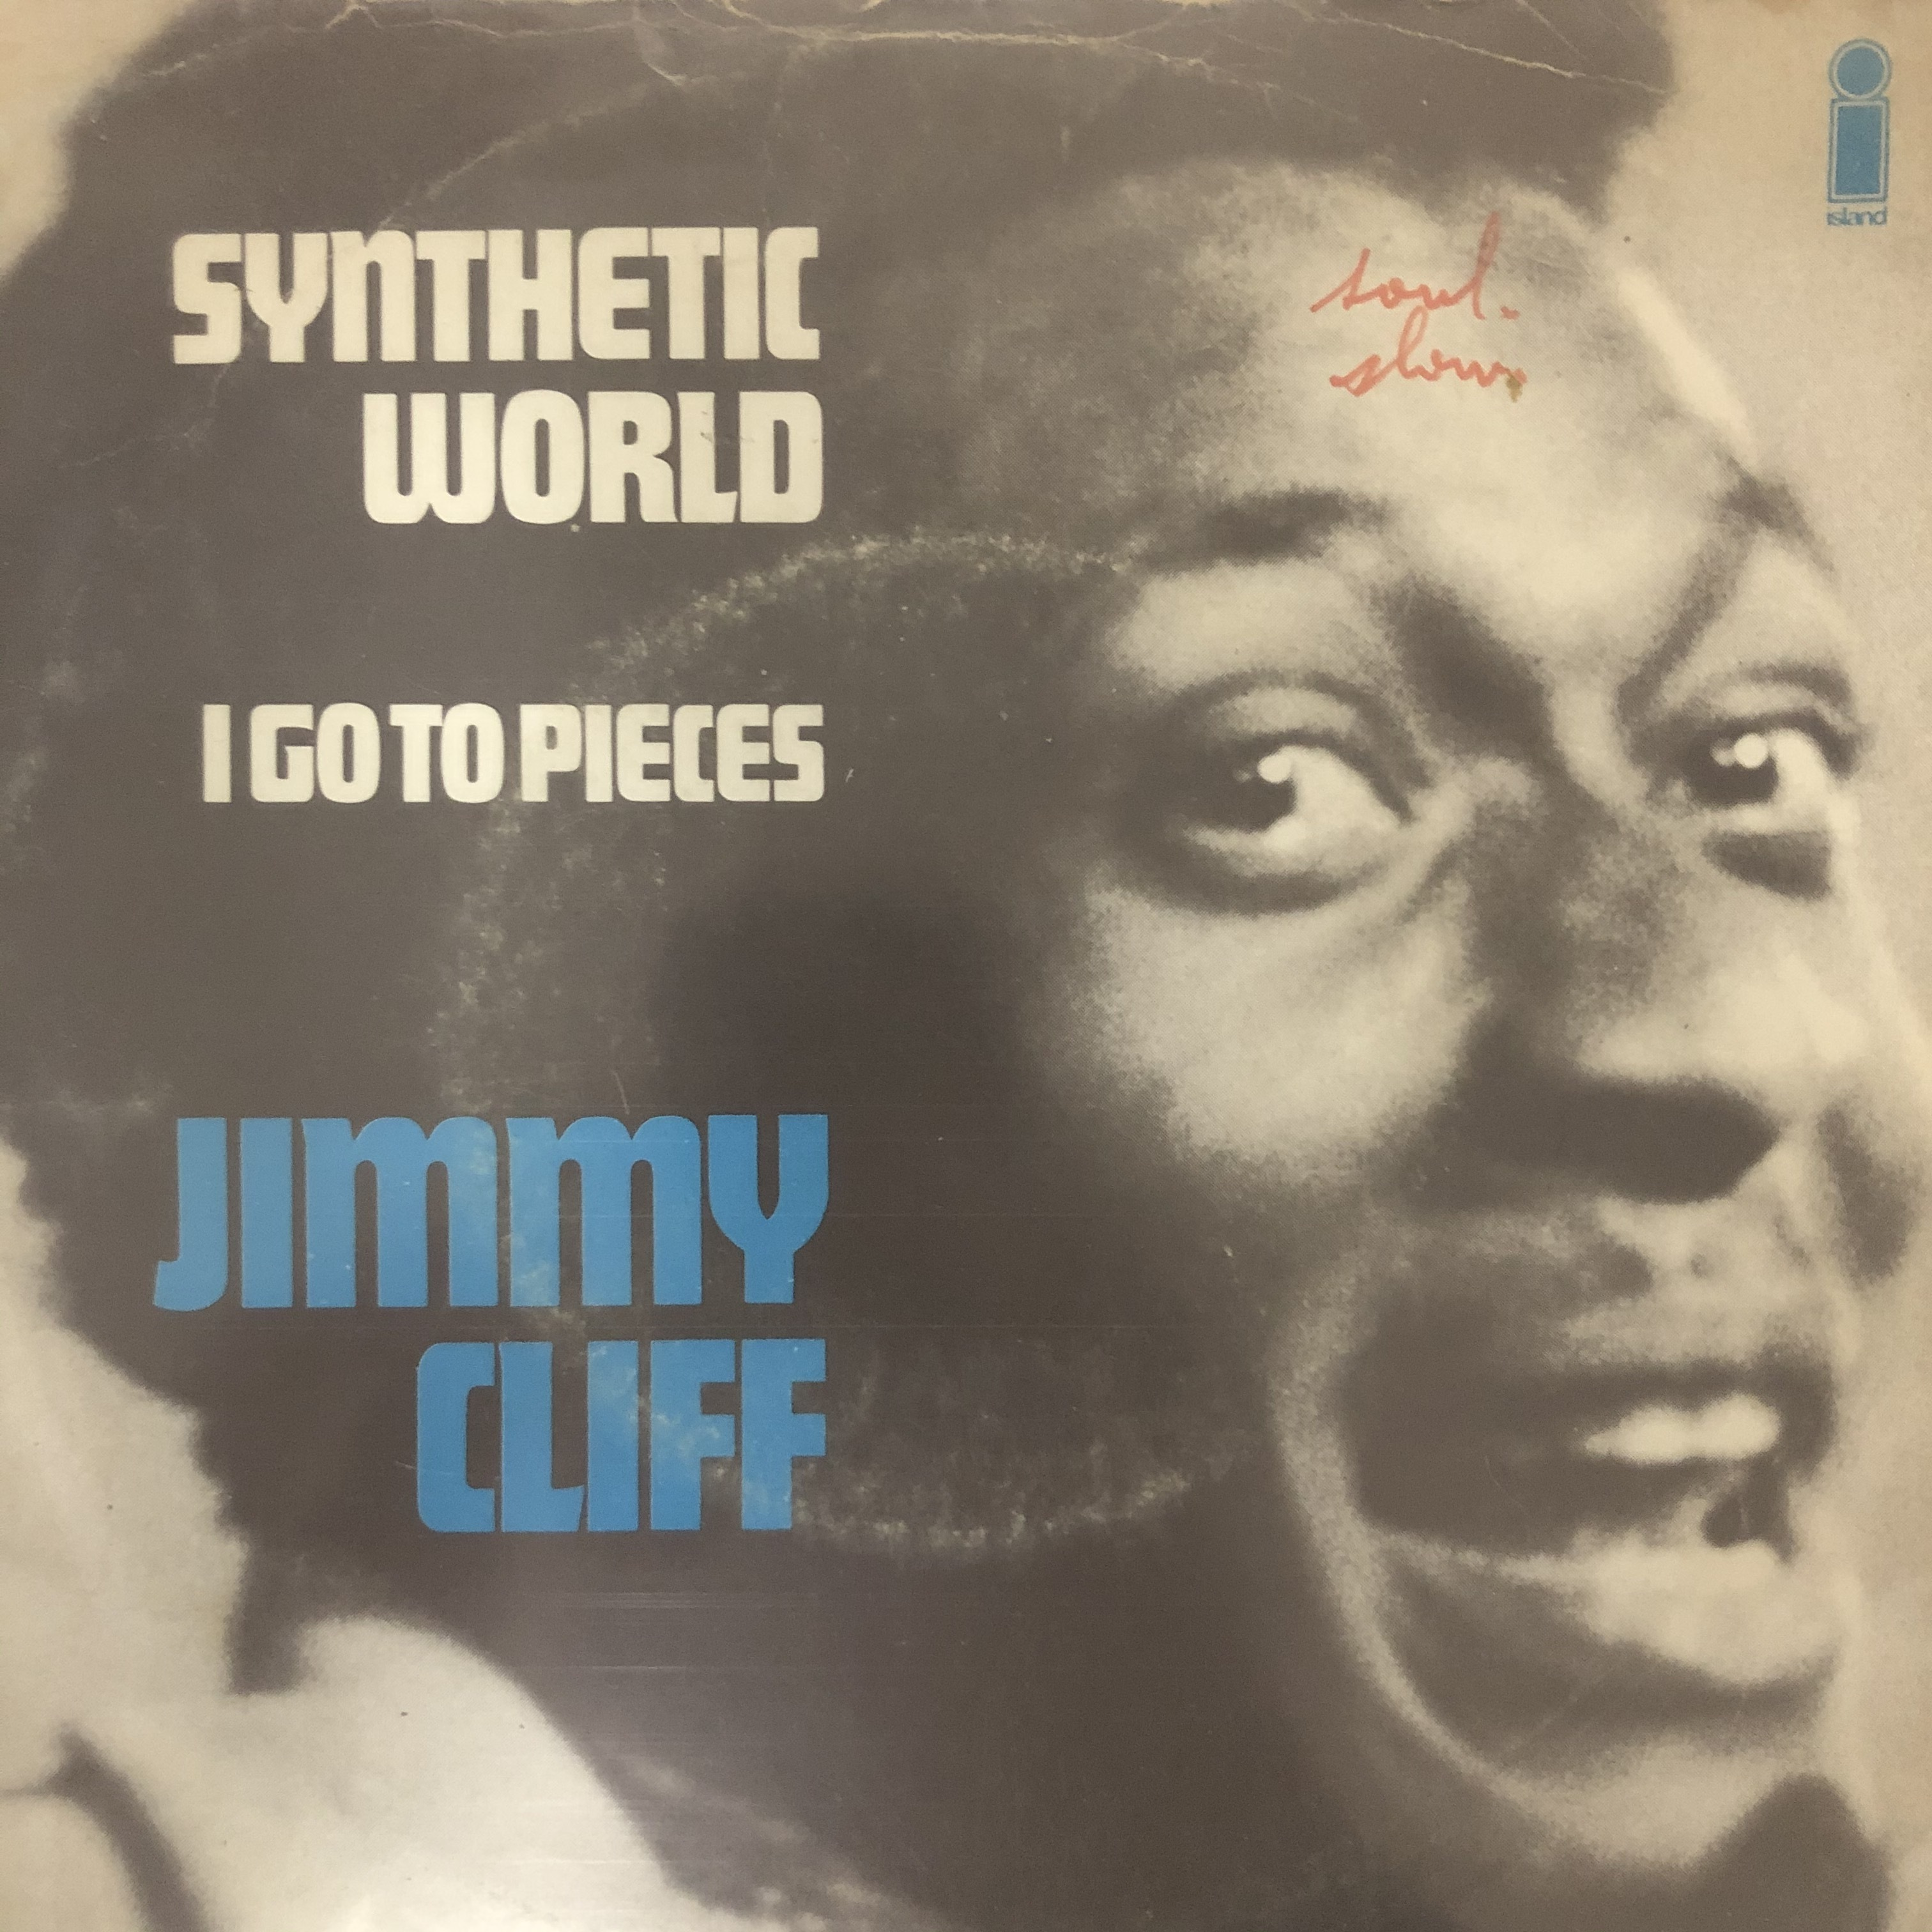 Jimmy Cliff - Synthetic World【7-20582】